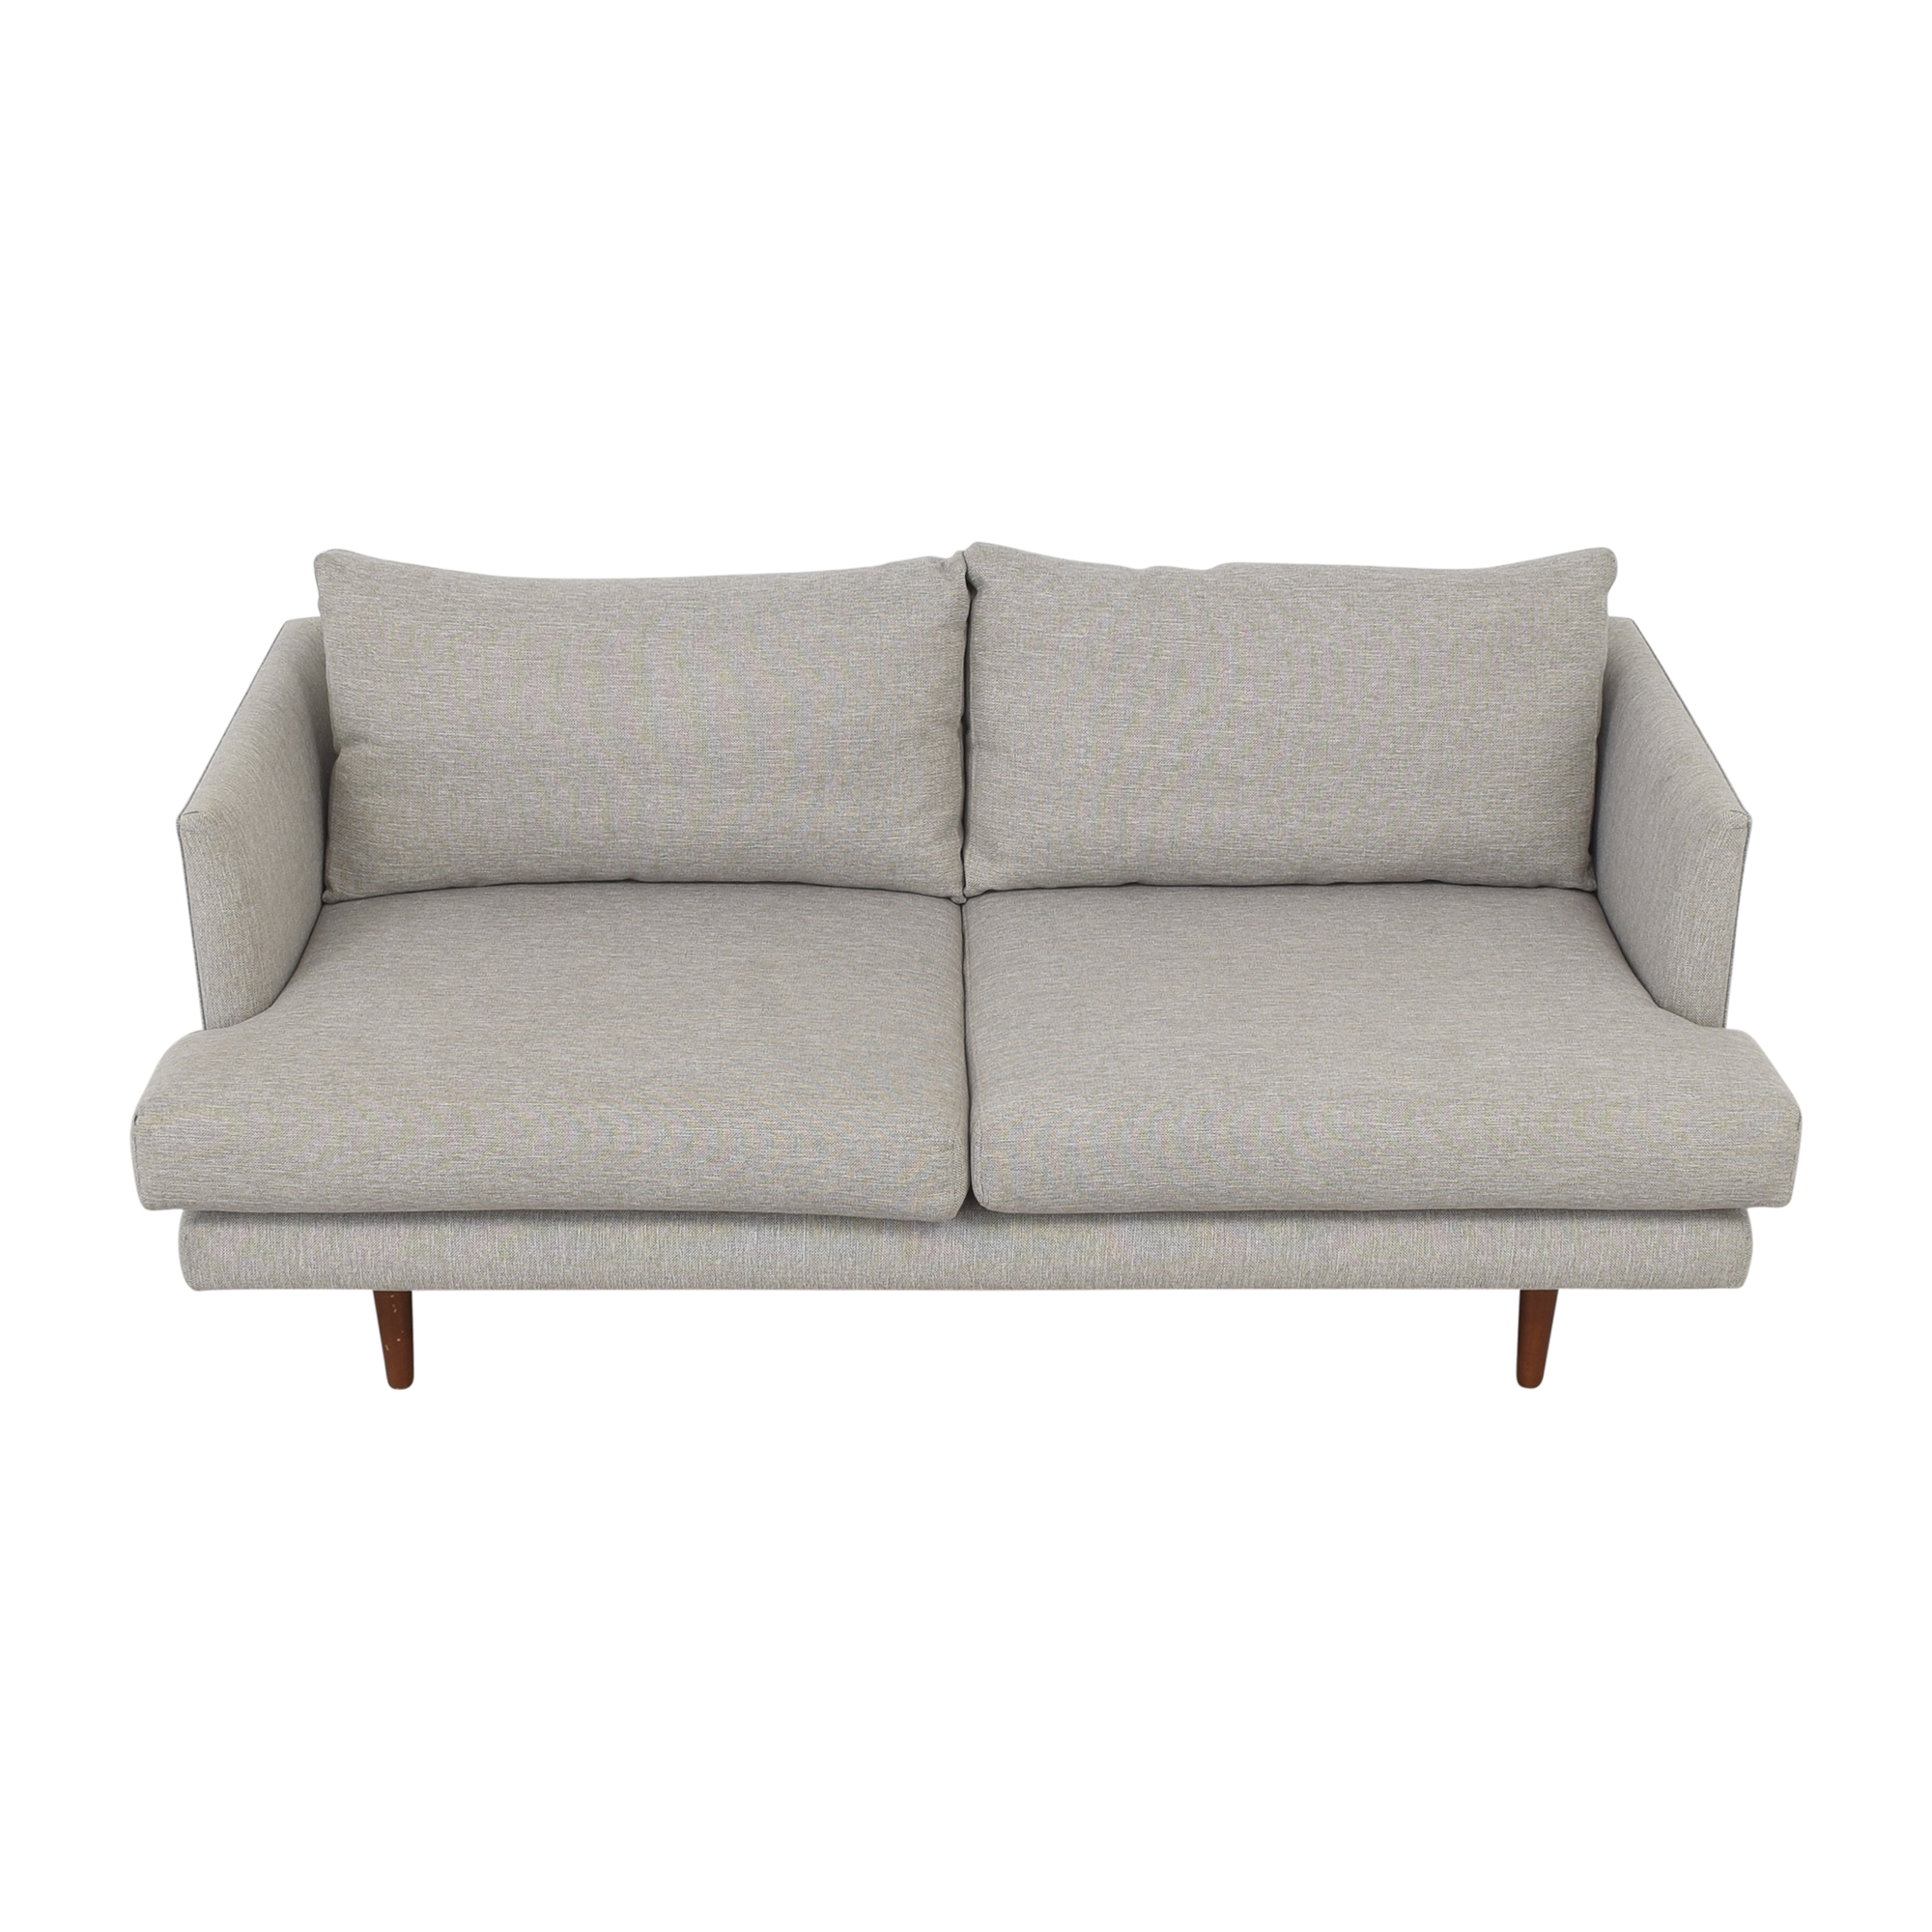 Article Article Burrard Loveseat nyc